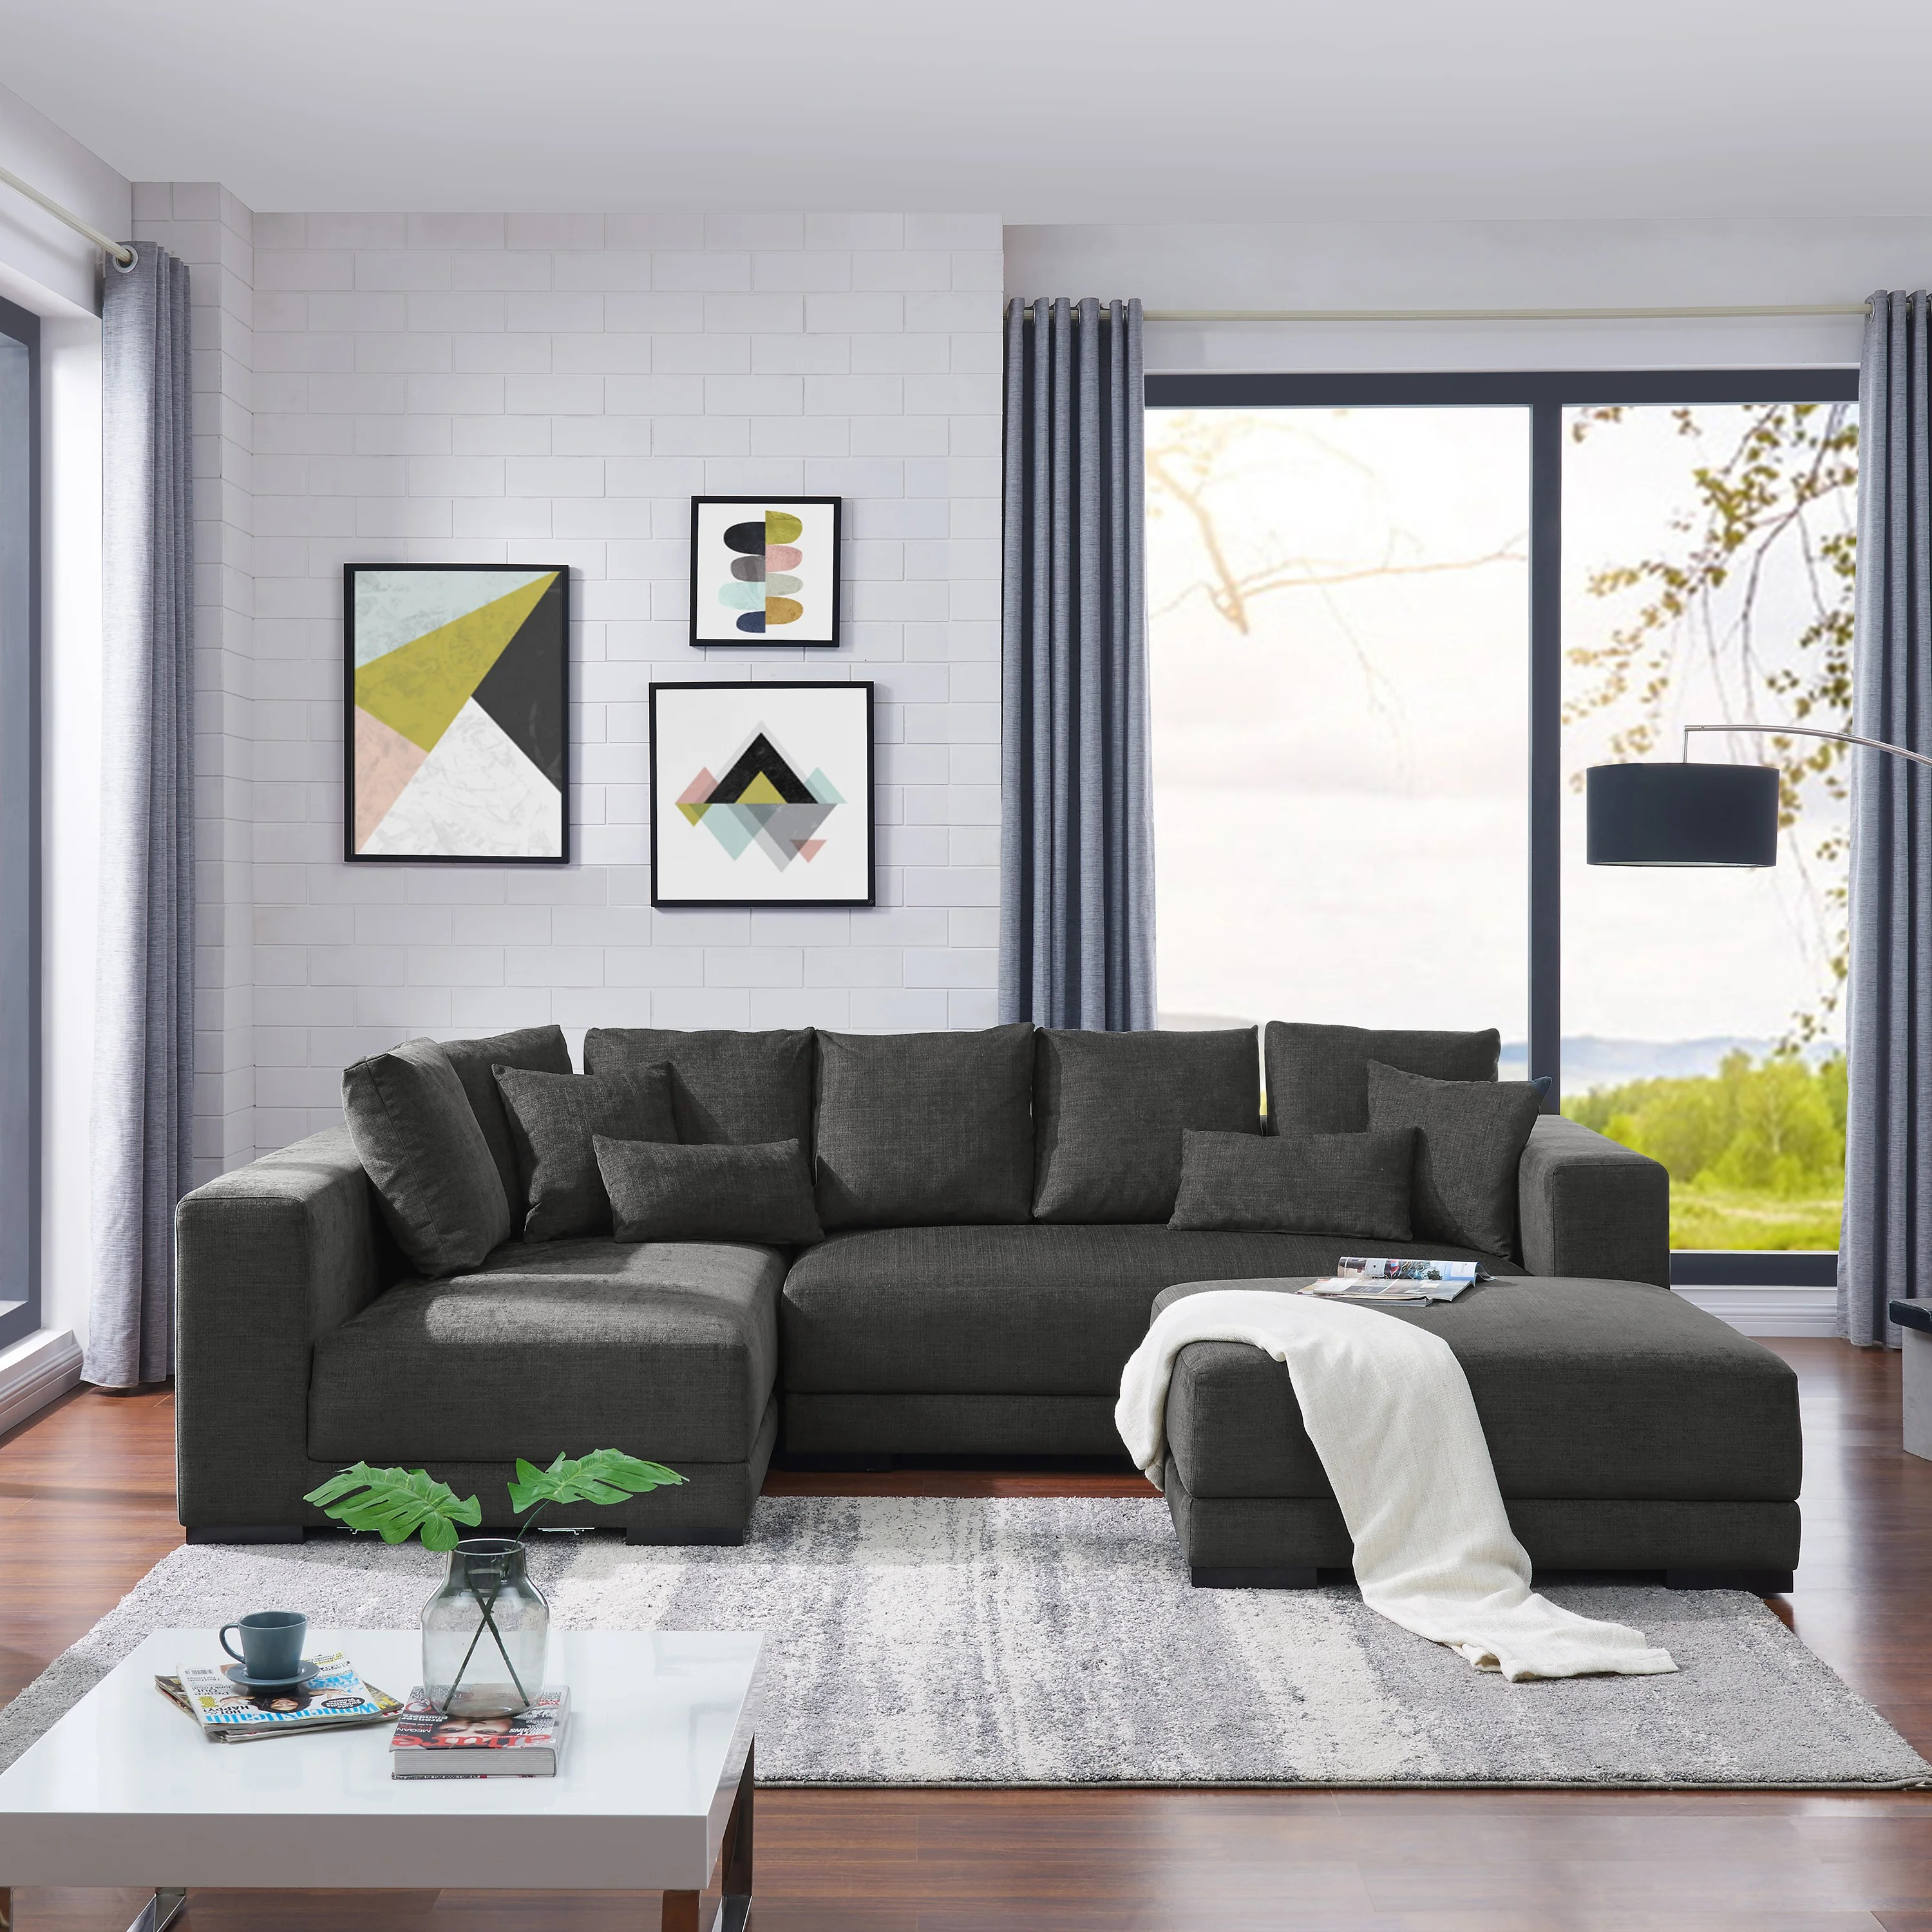 chesterfield pull out sofa bed chaise longue uk buy grey sectional sofas online at overstock.com | our ...